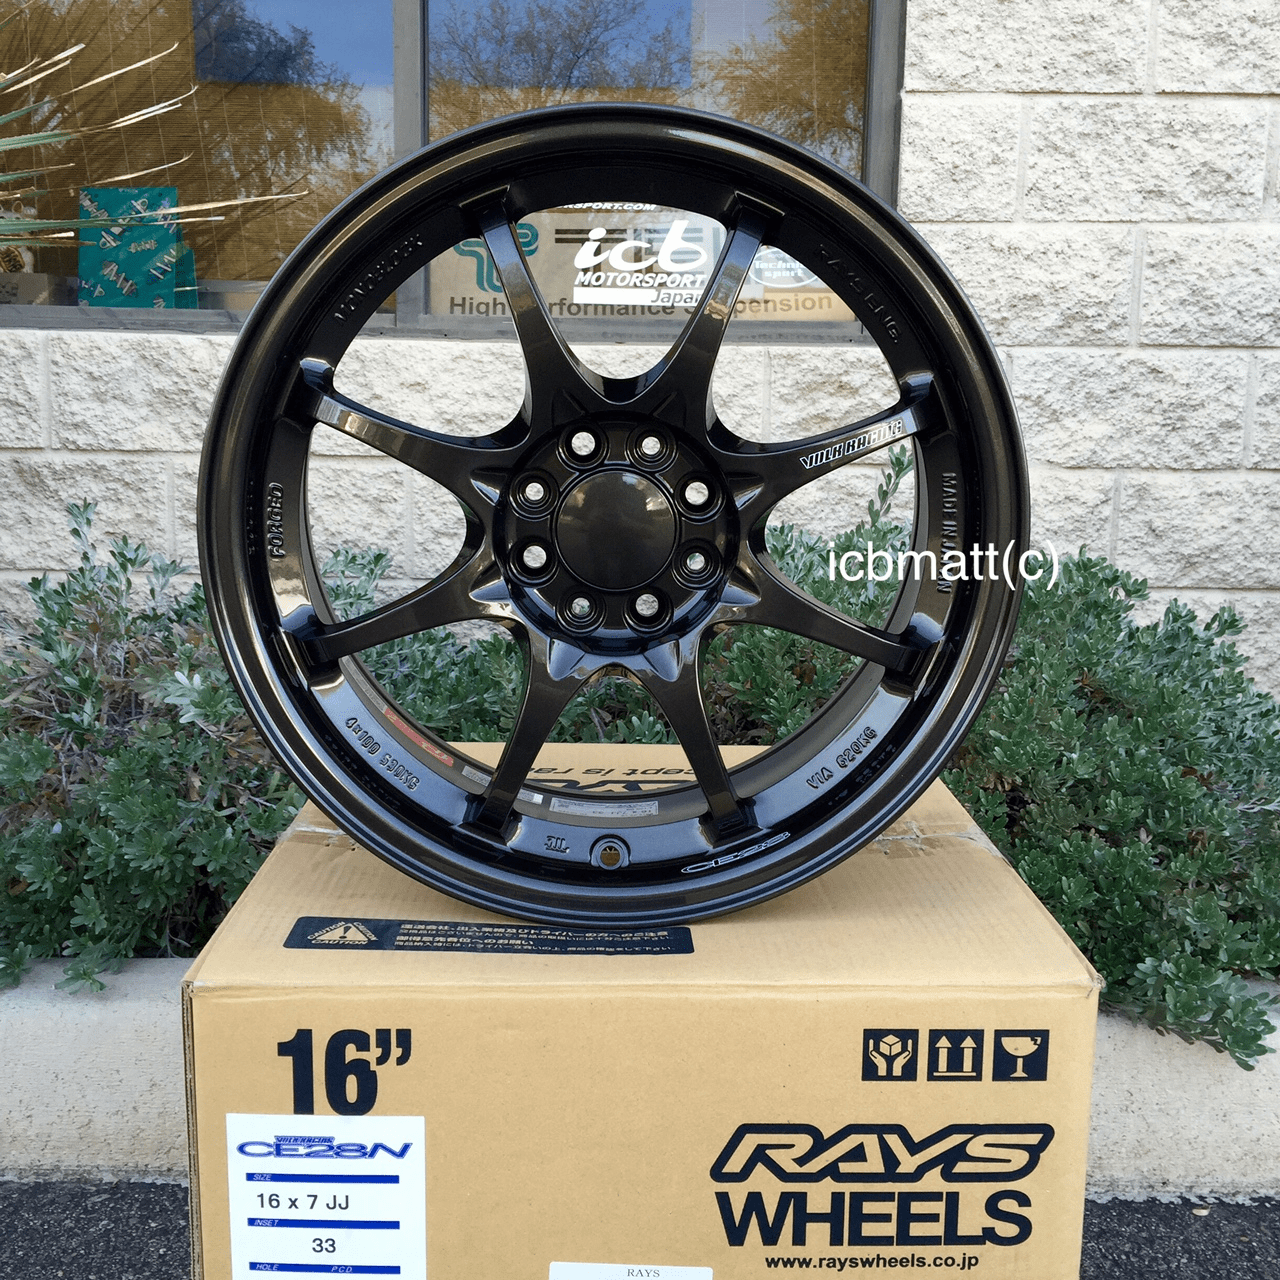 Rays Volk Racing CE28N Wheels 16X7 4X100 +33 Offset Various Colors SOLD